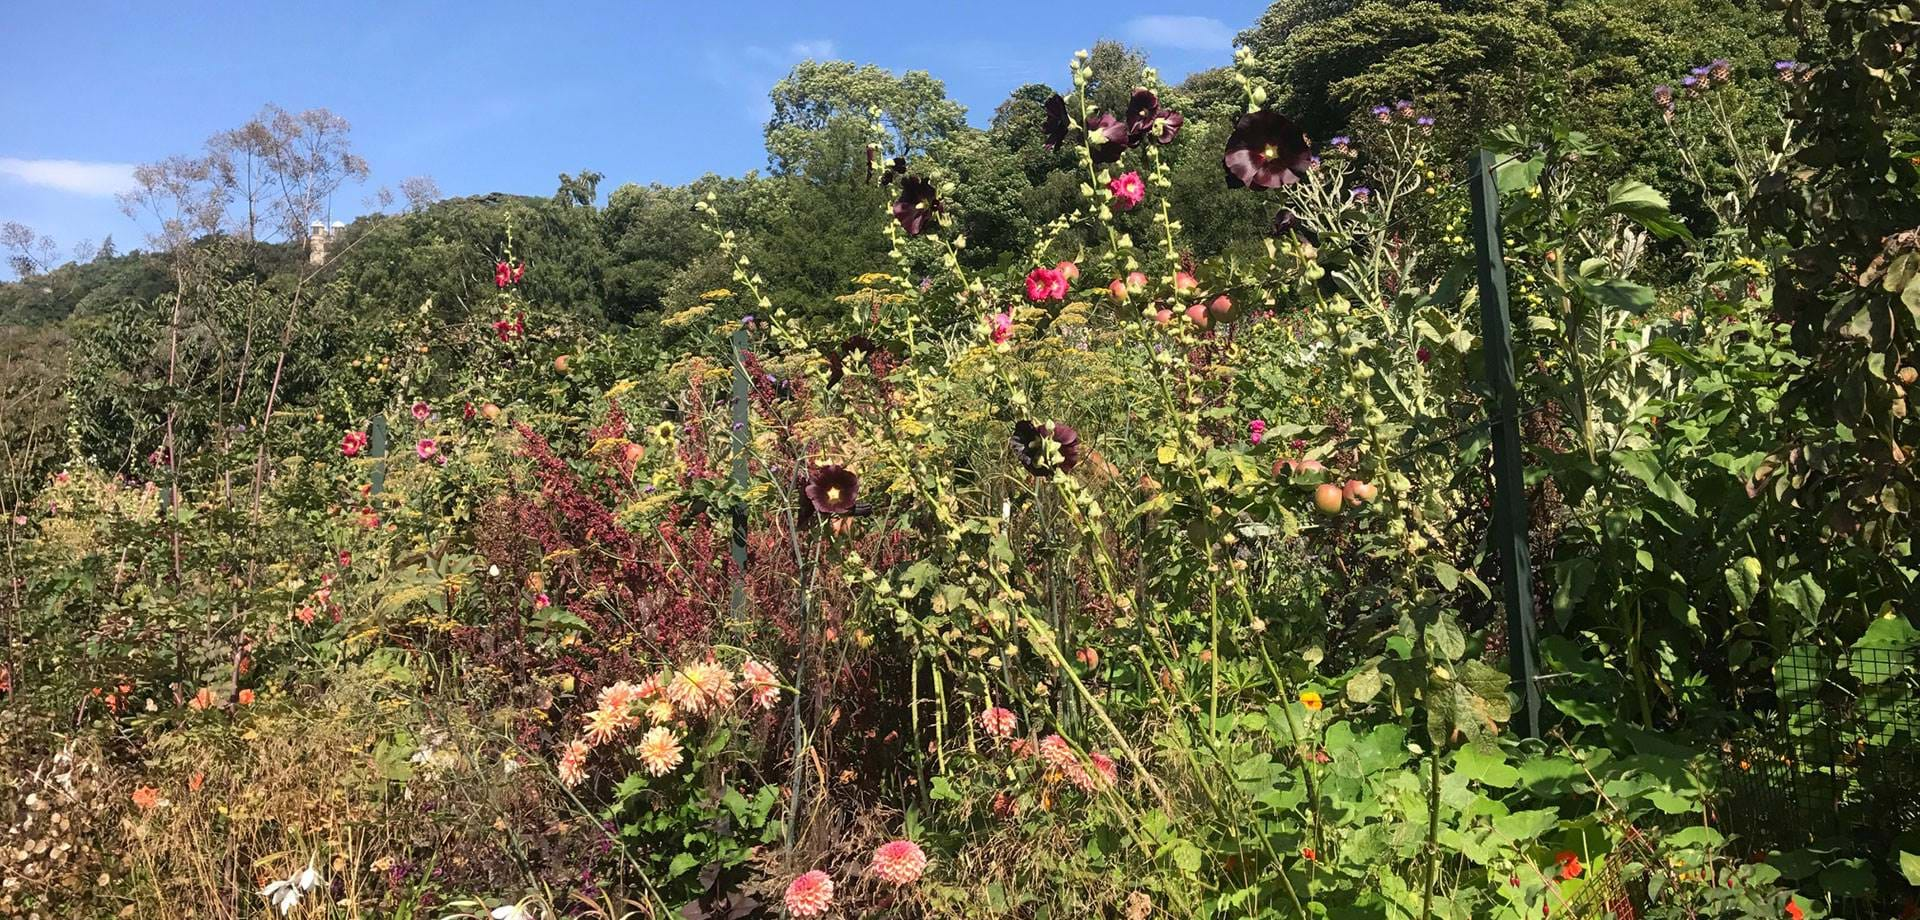 The Kitchen Garden Blog: August and September